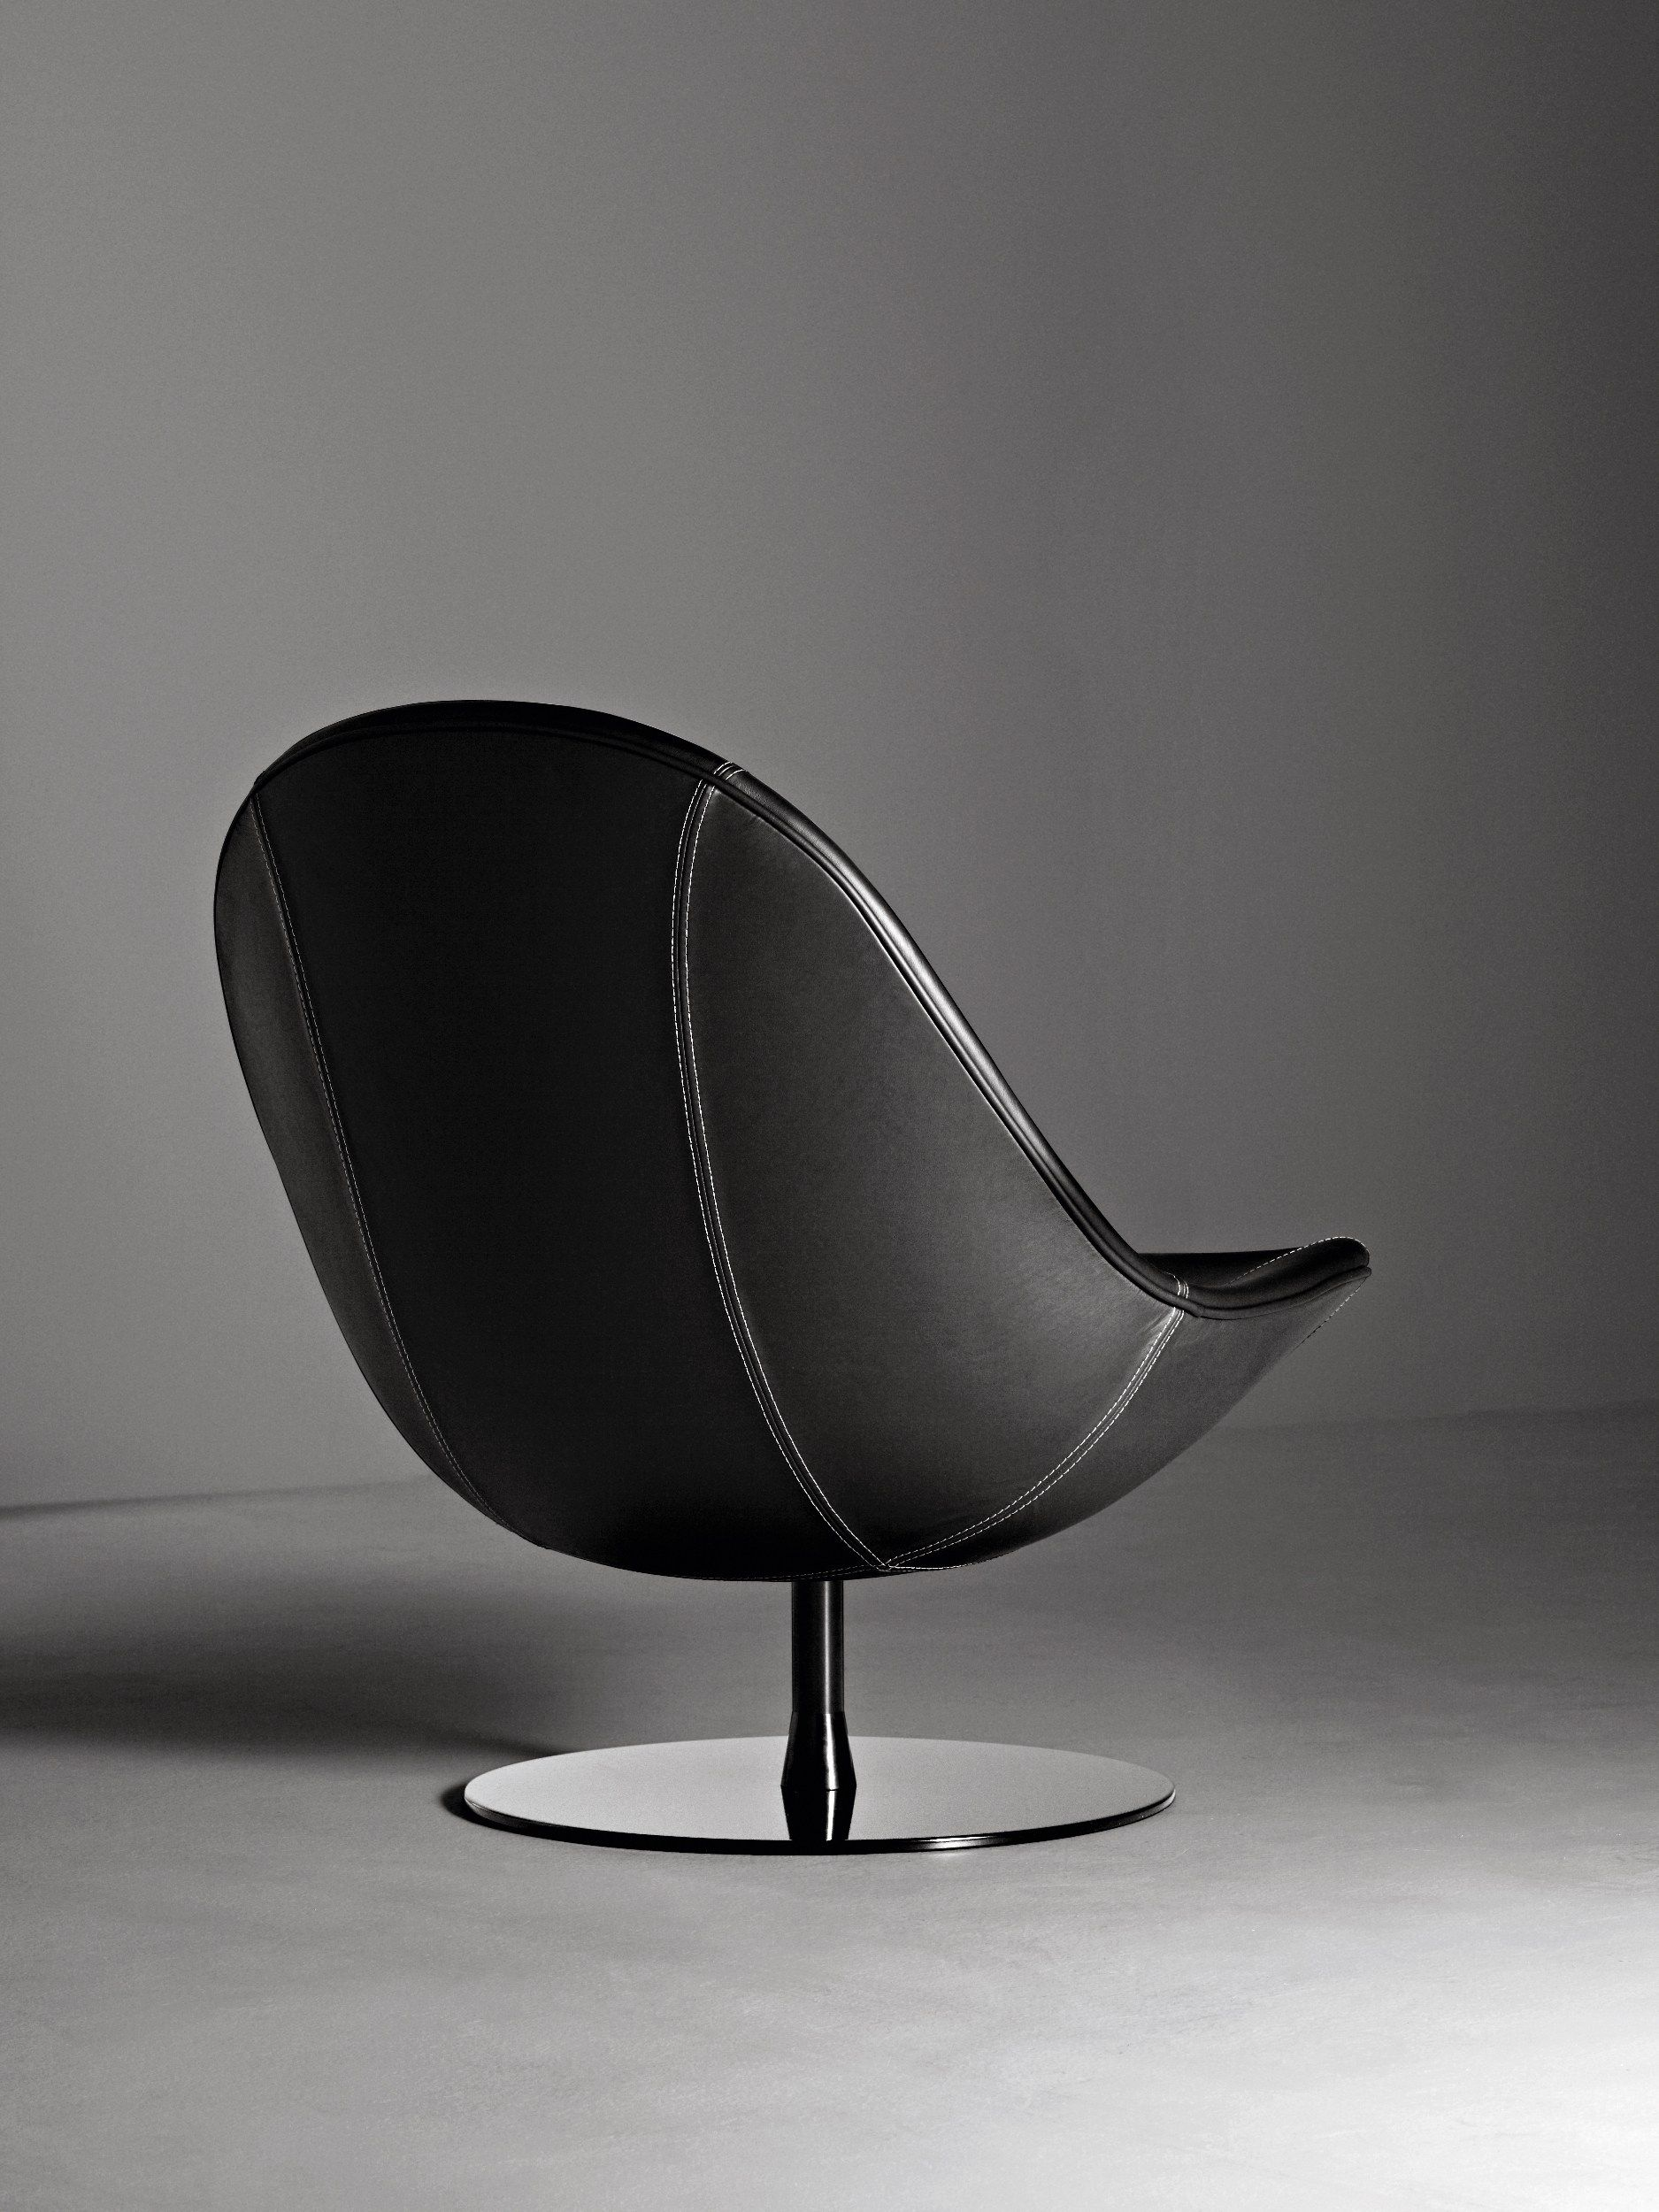 Men In Black Egg Chair Swivel Leather Armchair Dolce Vita By La Cividina Lounge